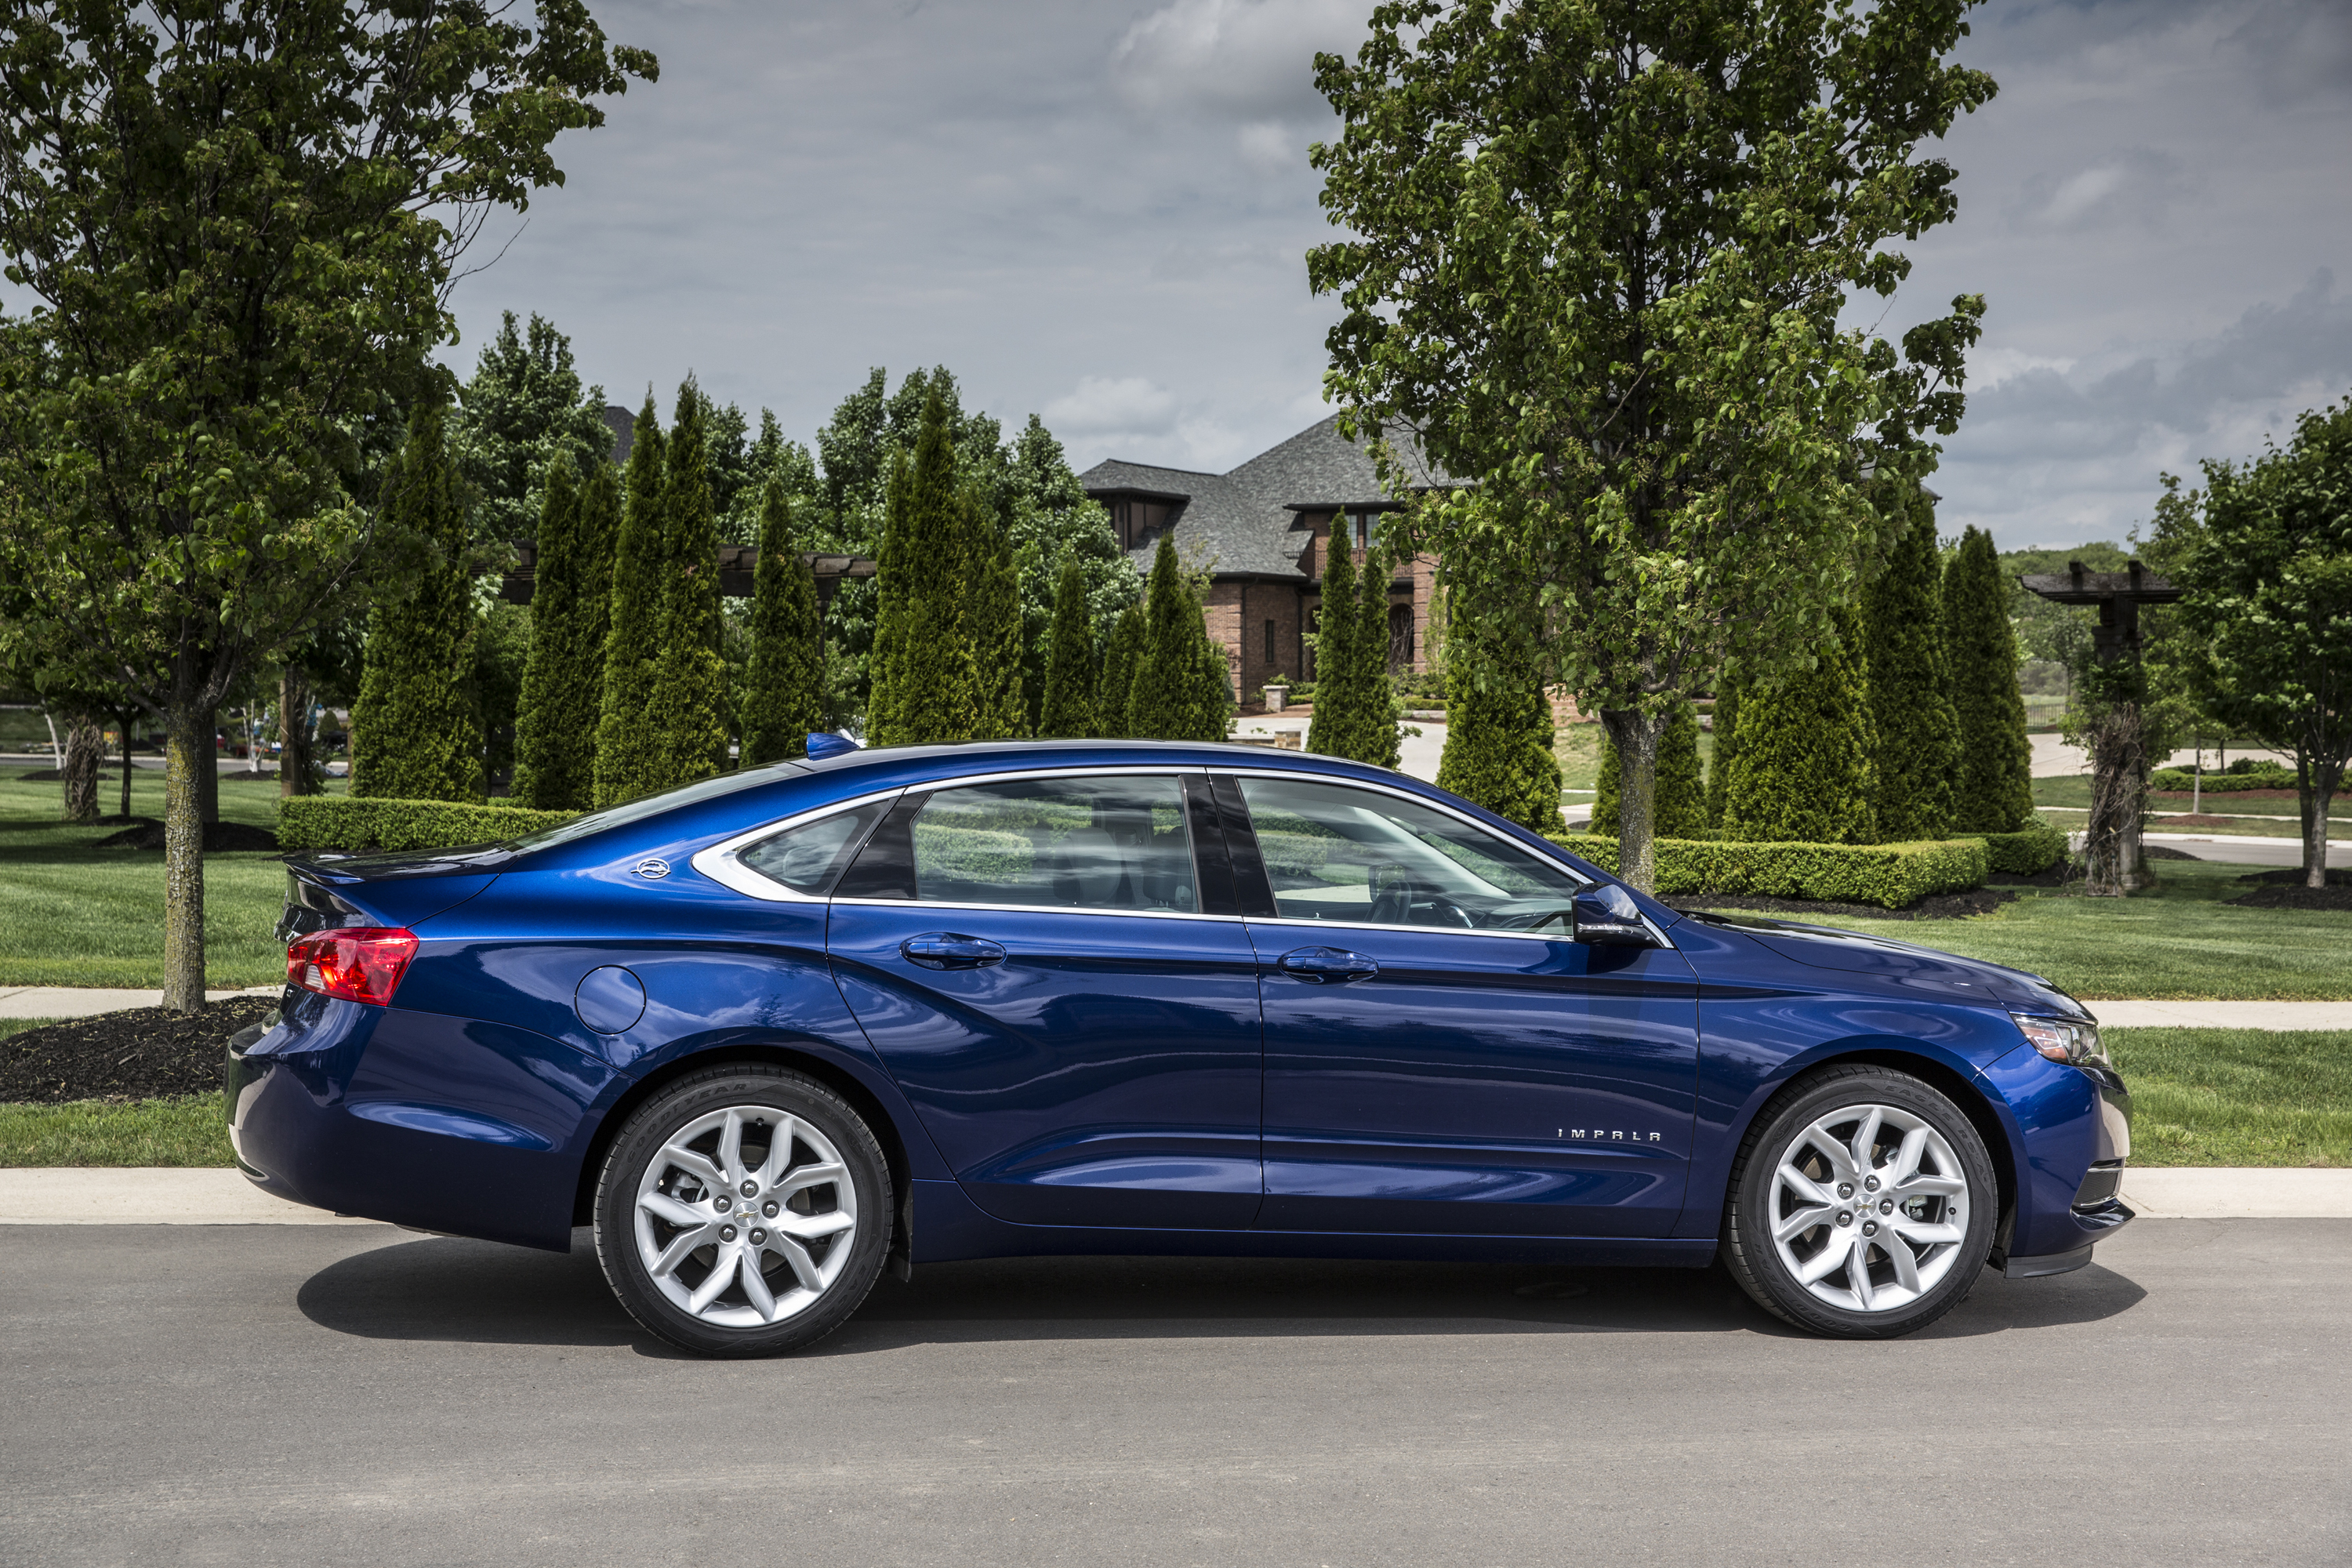 lexus chevrolet and impala best ranks above full sedan consumer as news new dallas reports chevy size audi